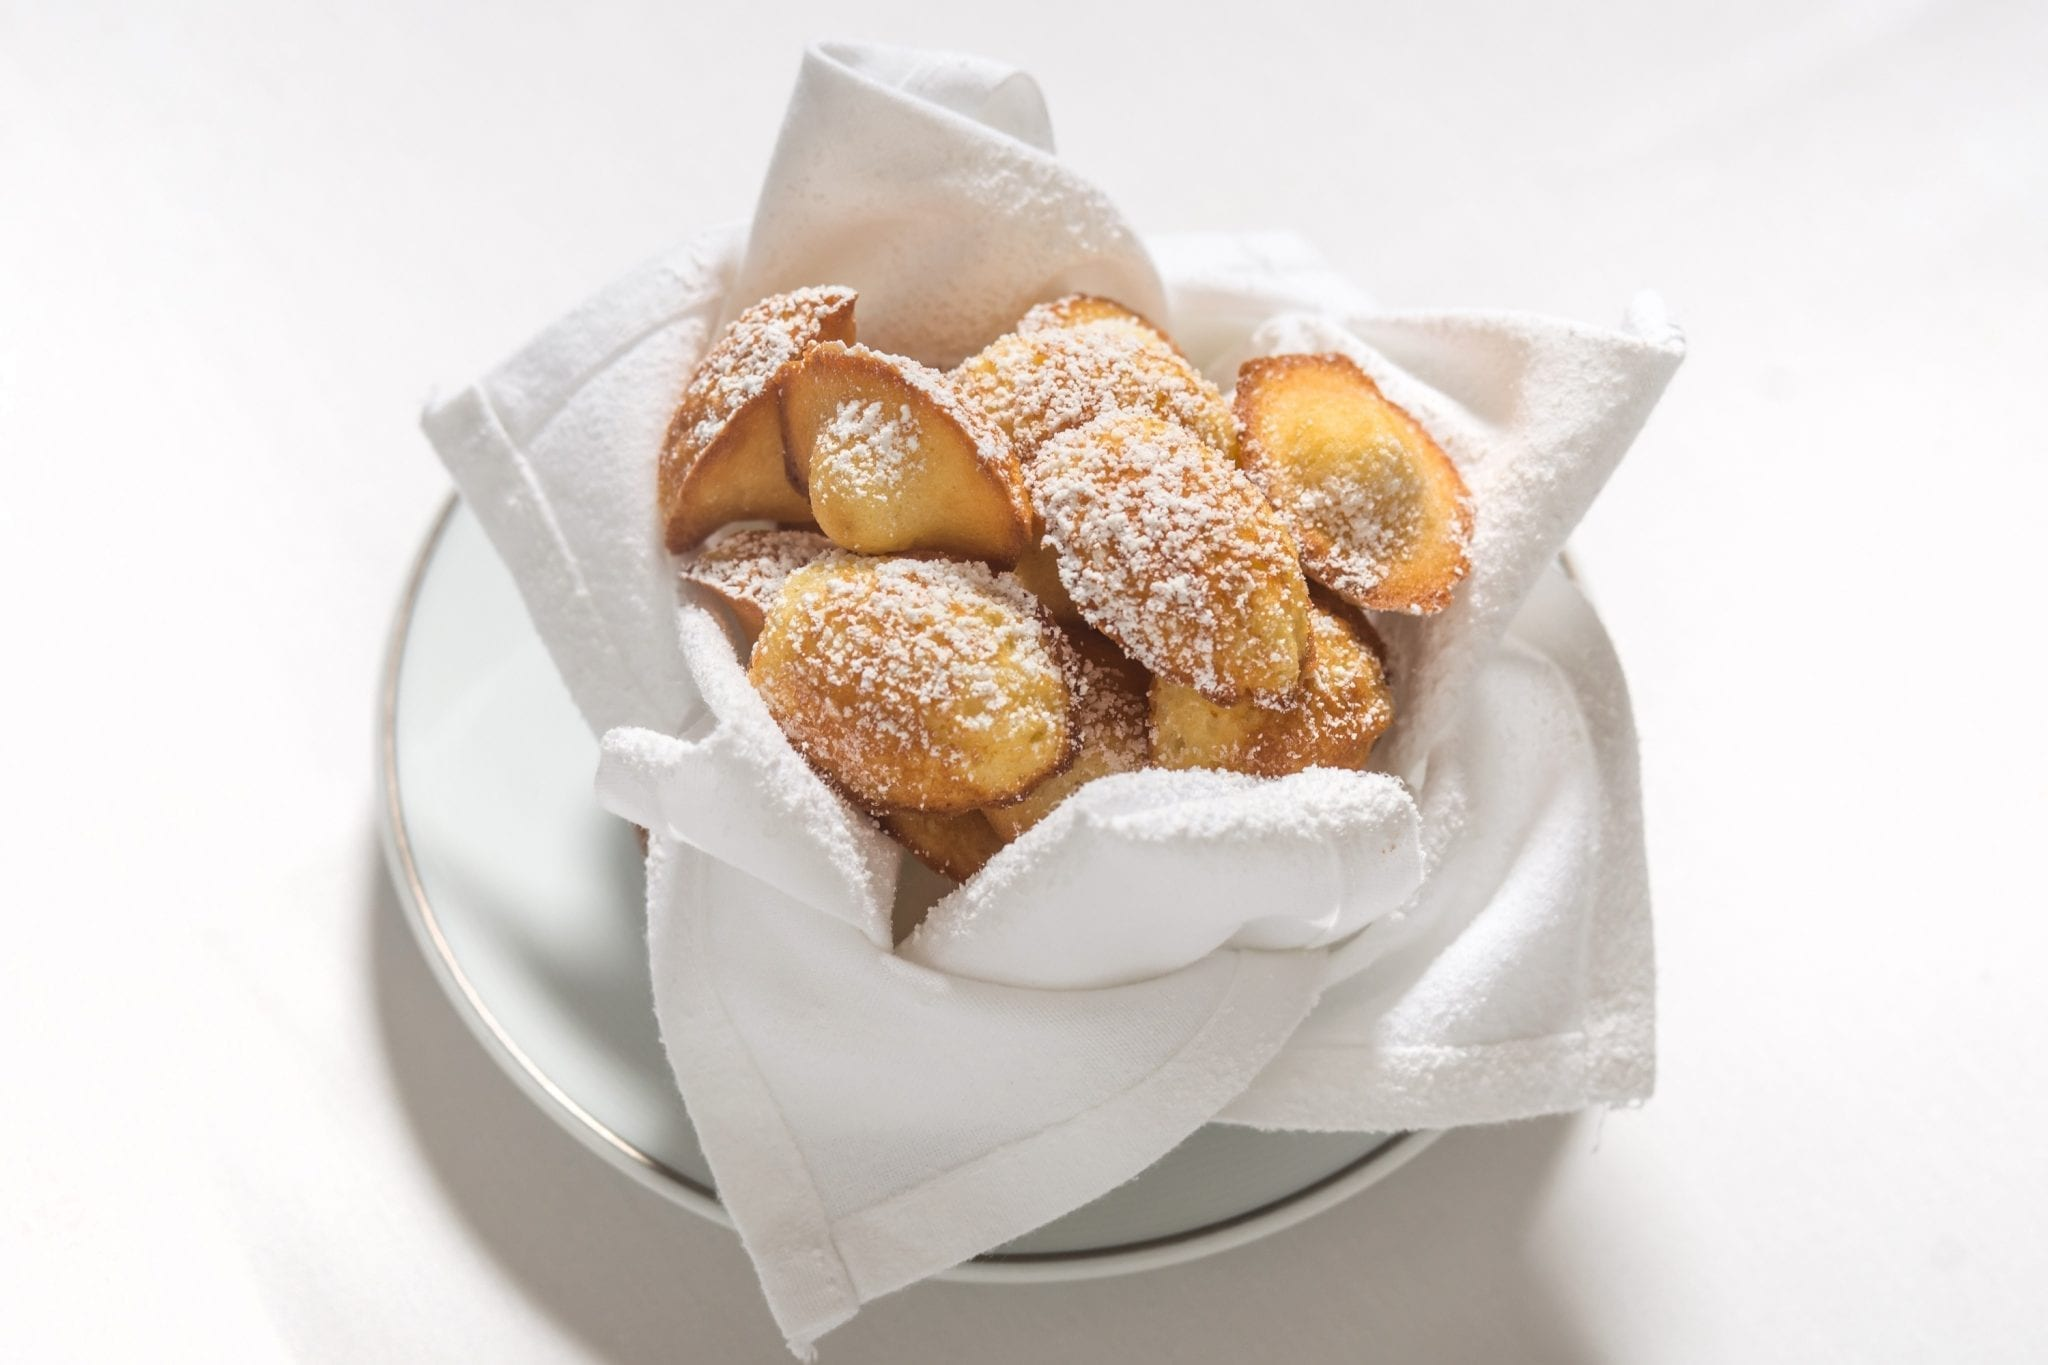 A small bowl of Madelienes, served from Cafe Boulud. Photograph by Paul Wagtouicz.